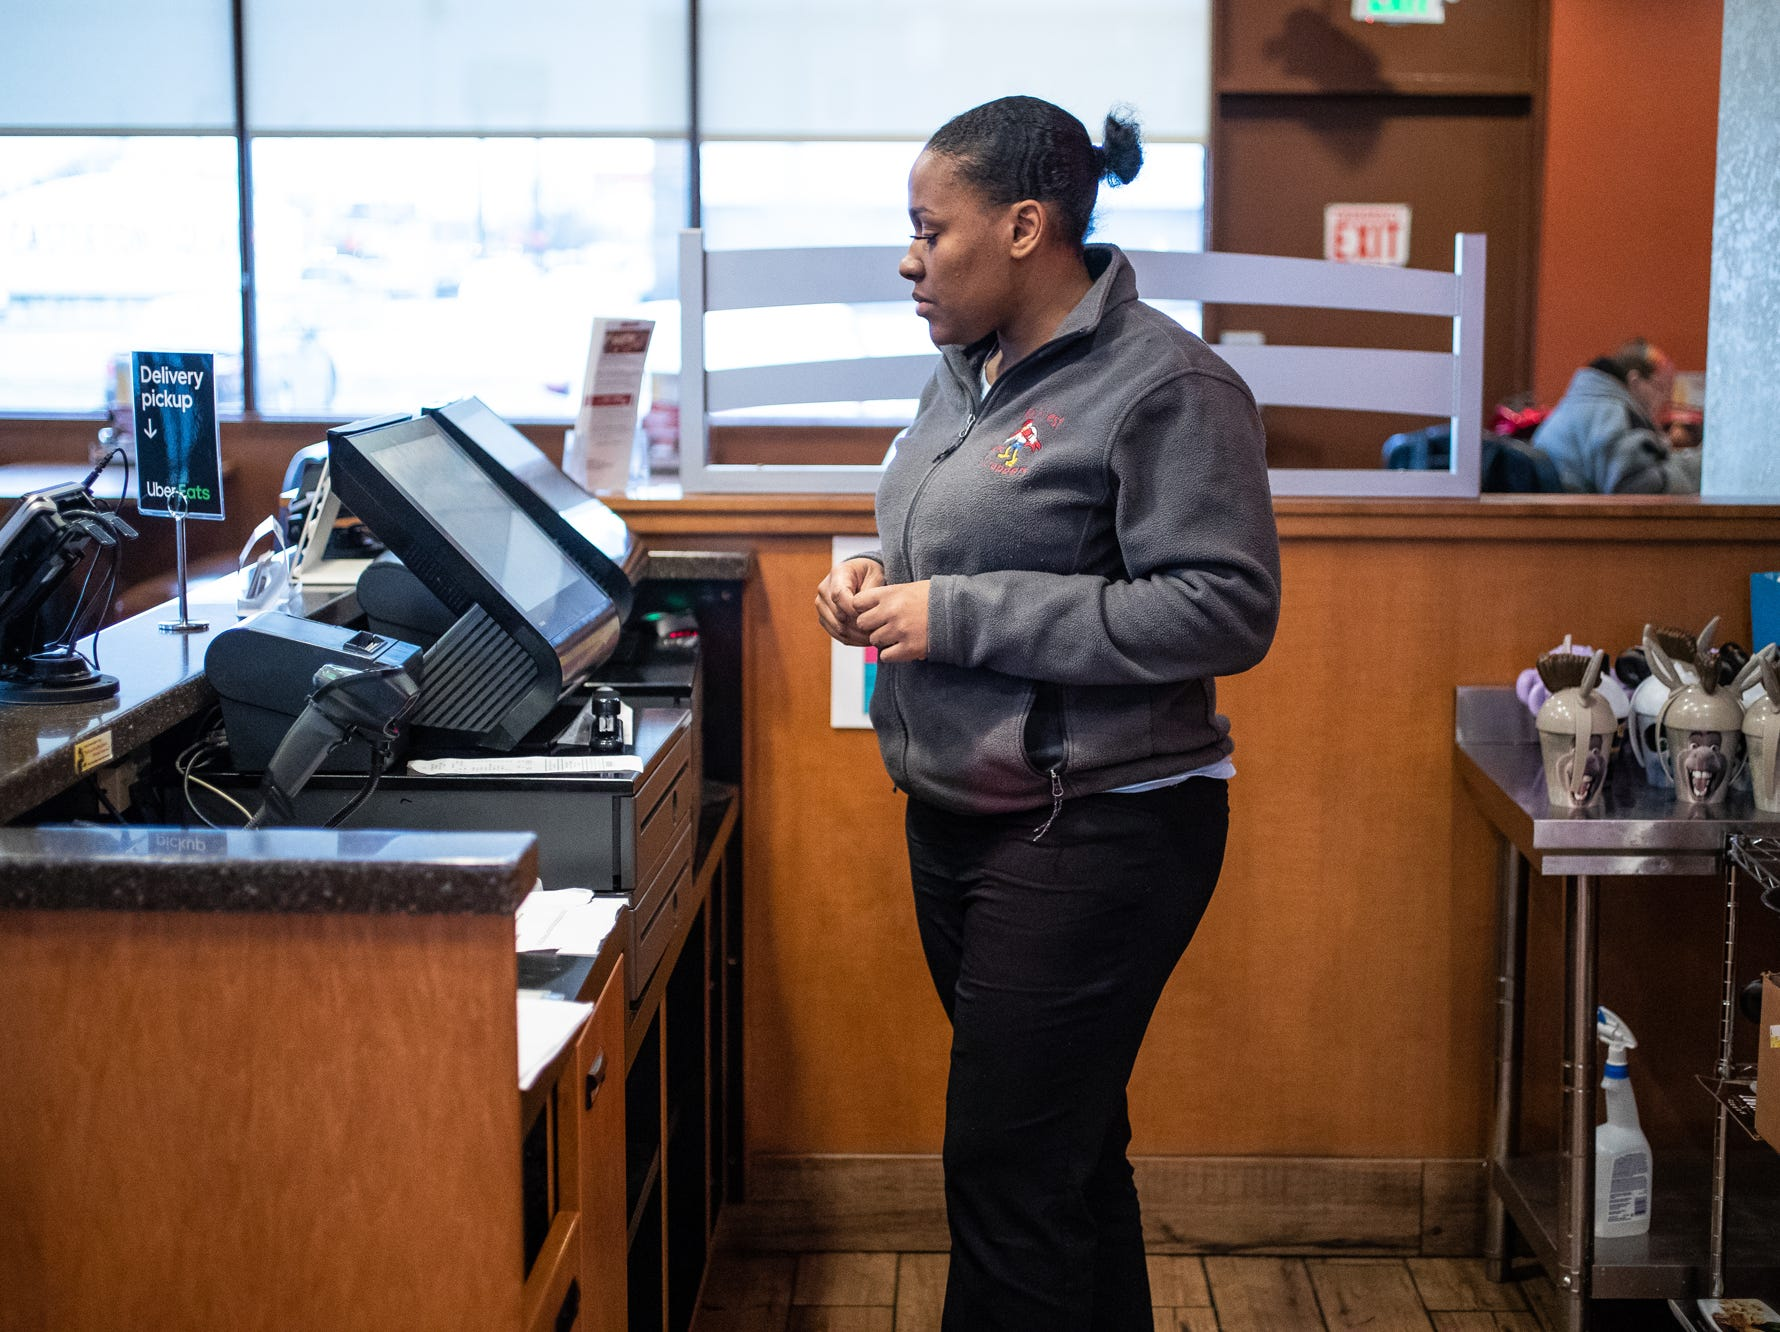 Latasha Sanders helps an employee enter a promo into the cash register for a customer at the Denny's off E. 82nd Street in Indianapolis on Tuesday, Feb. 19, 2019. Sanders is a shift manager at the location.